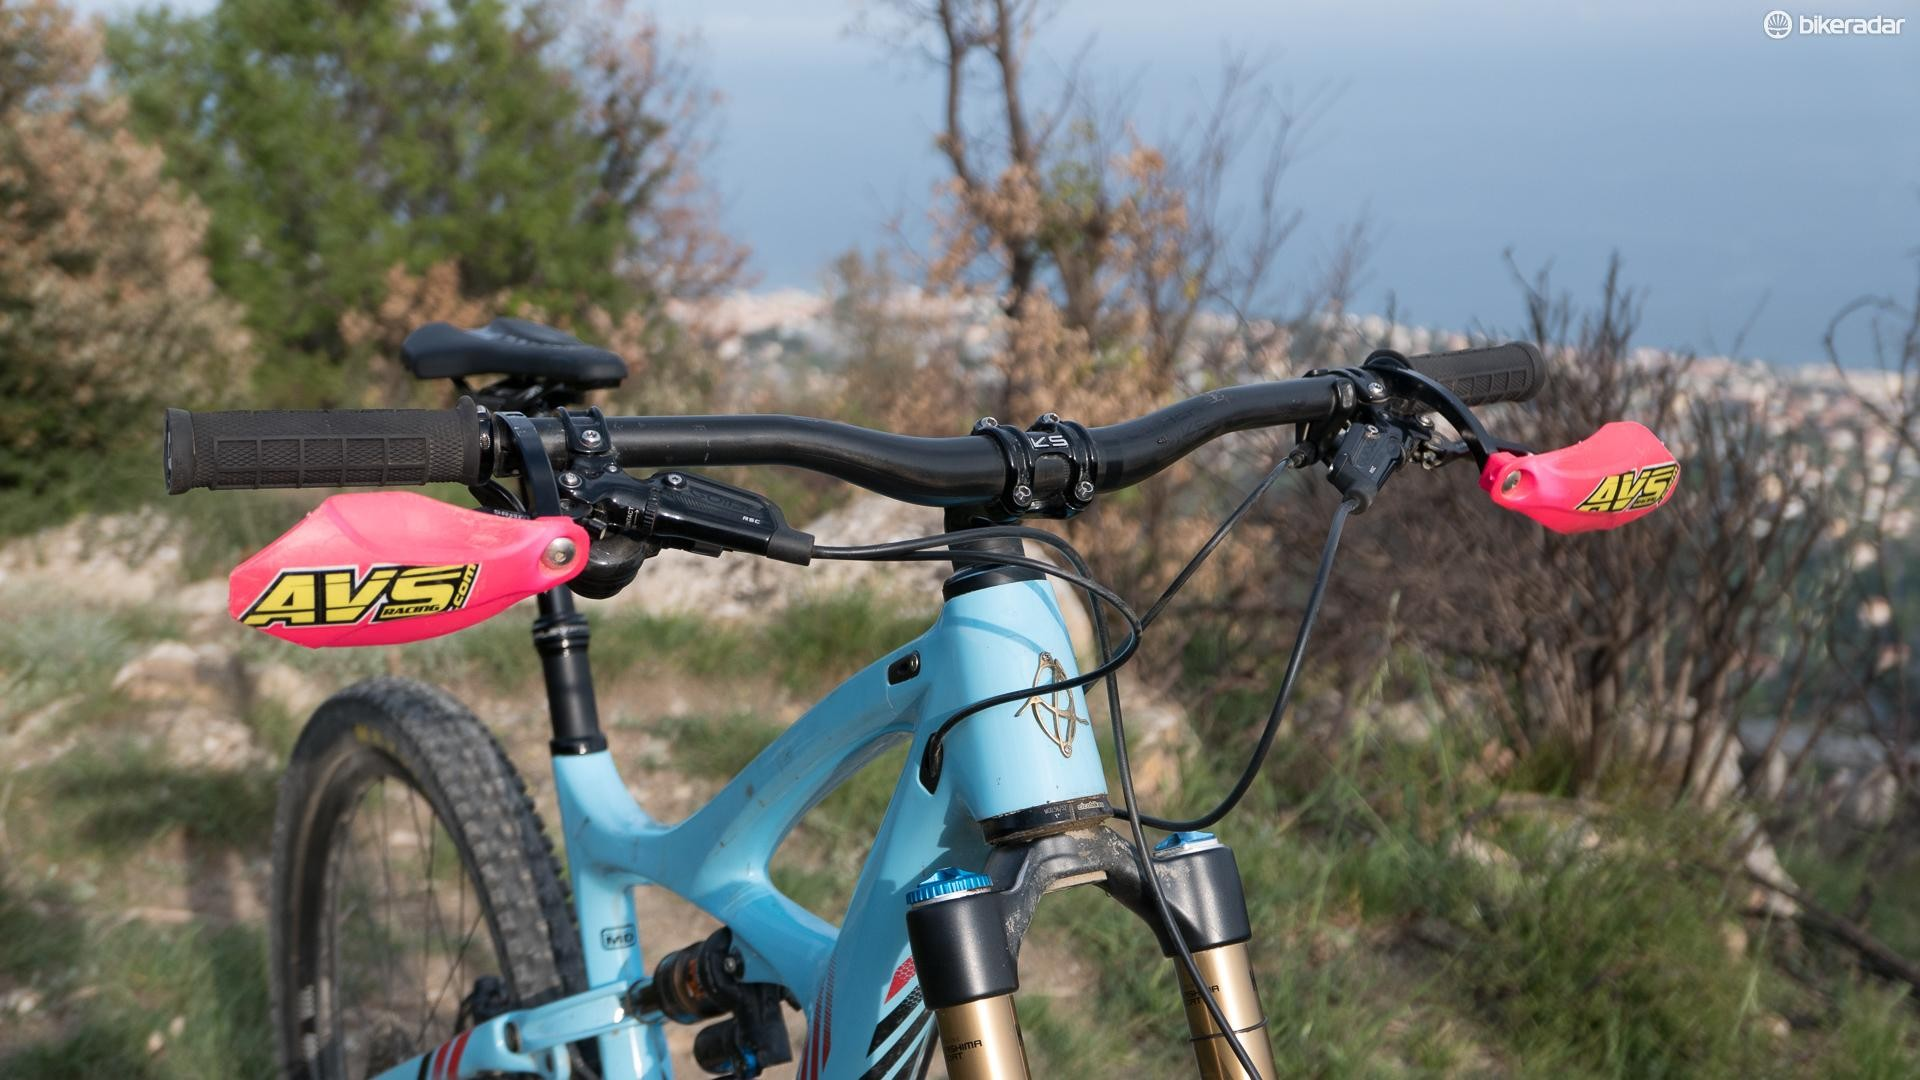 AVS hand guards are a popular add-on in this part of the world